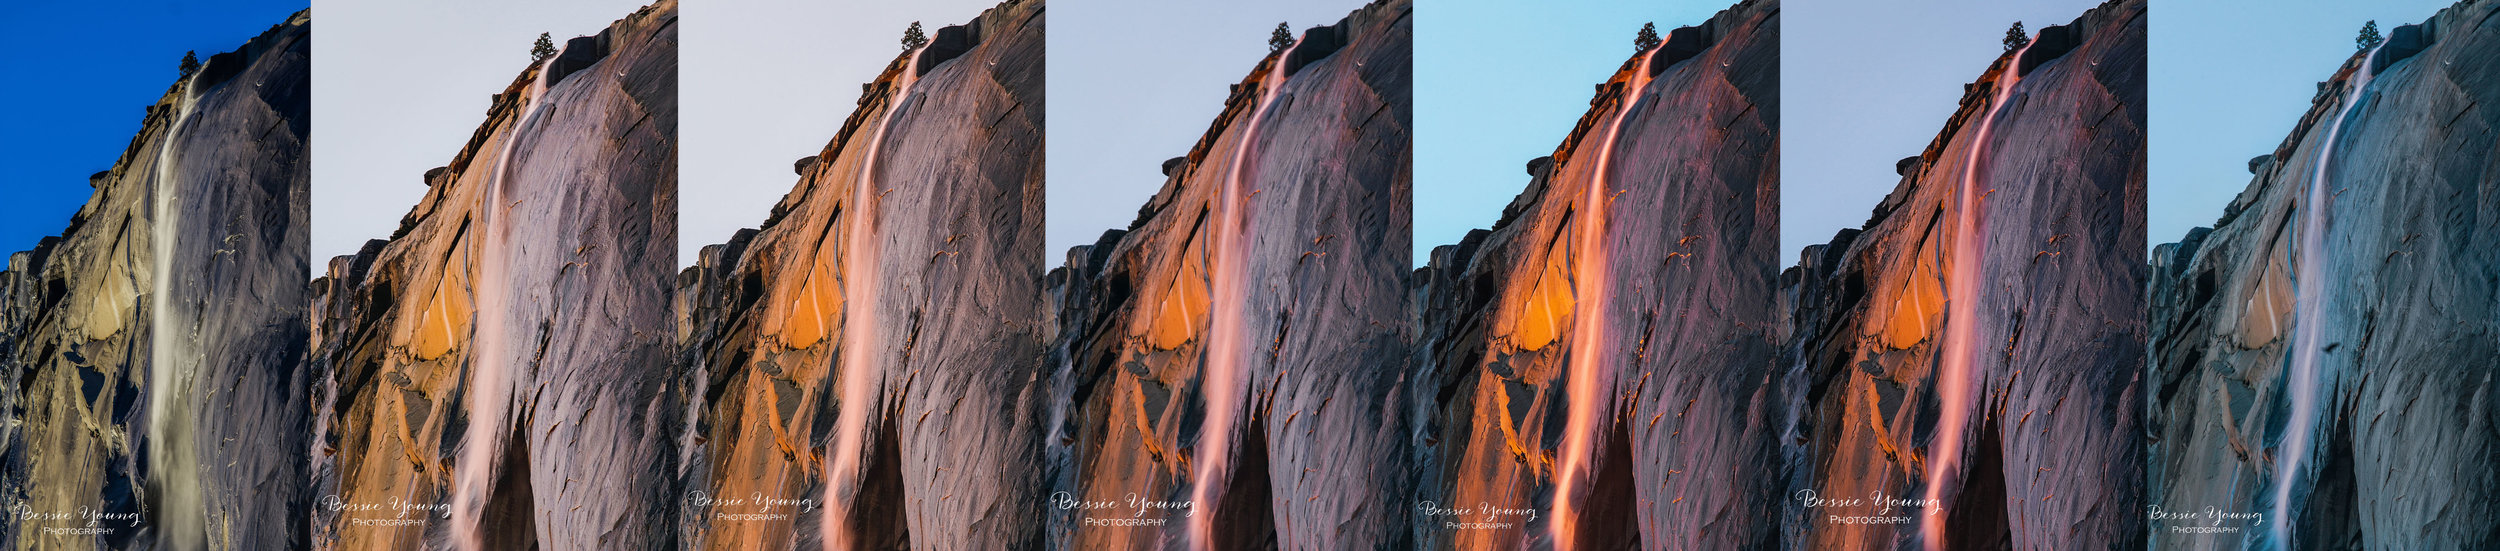 Yosemite Firefall Series - Yosemite National Park Landscape Photographer Bessie Young